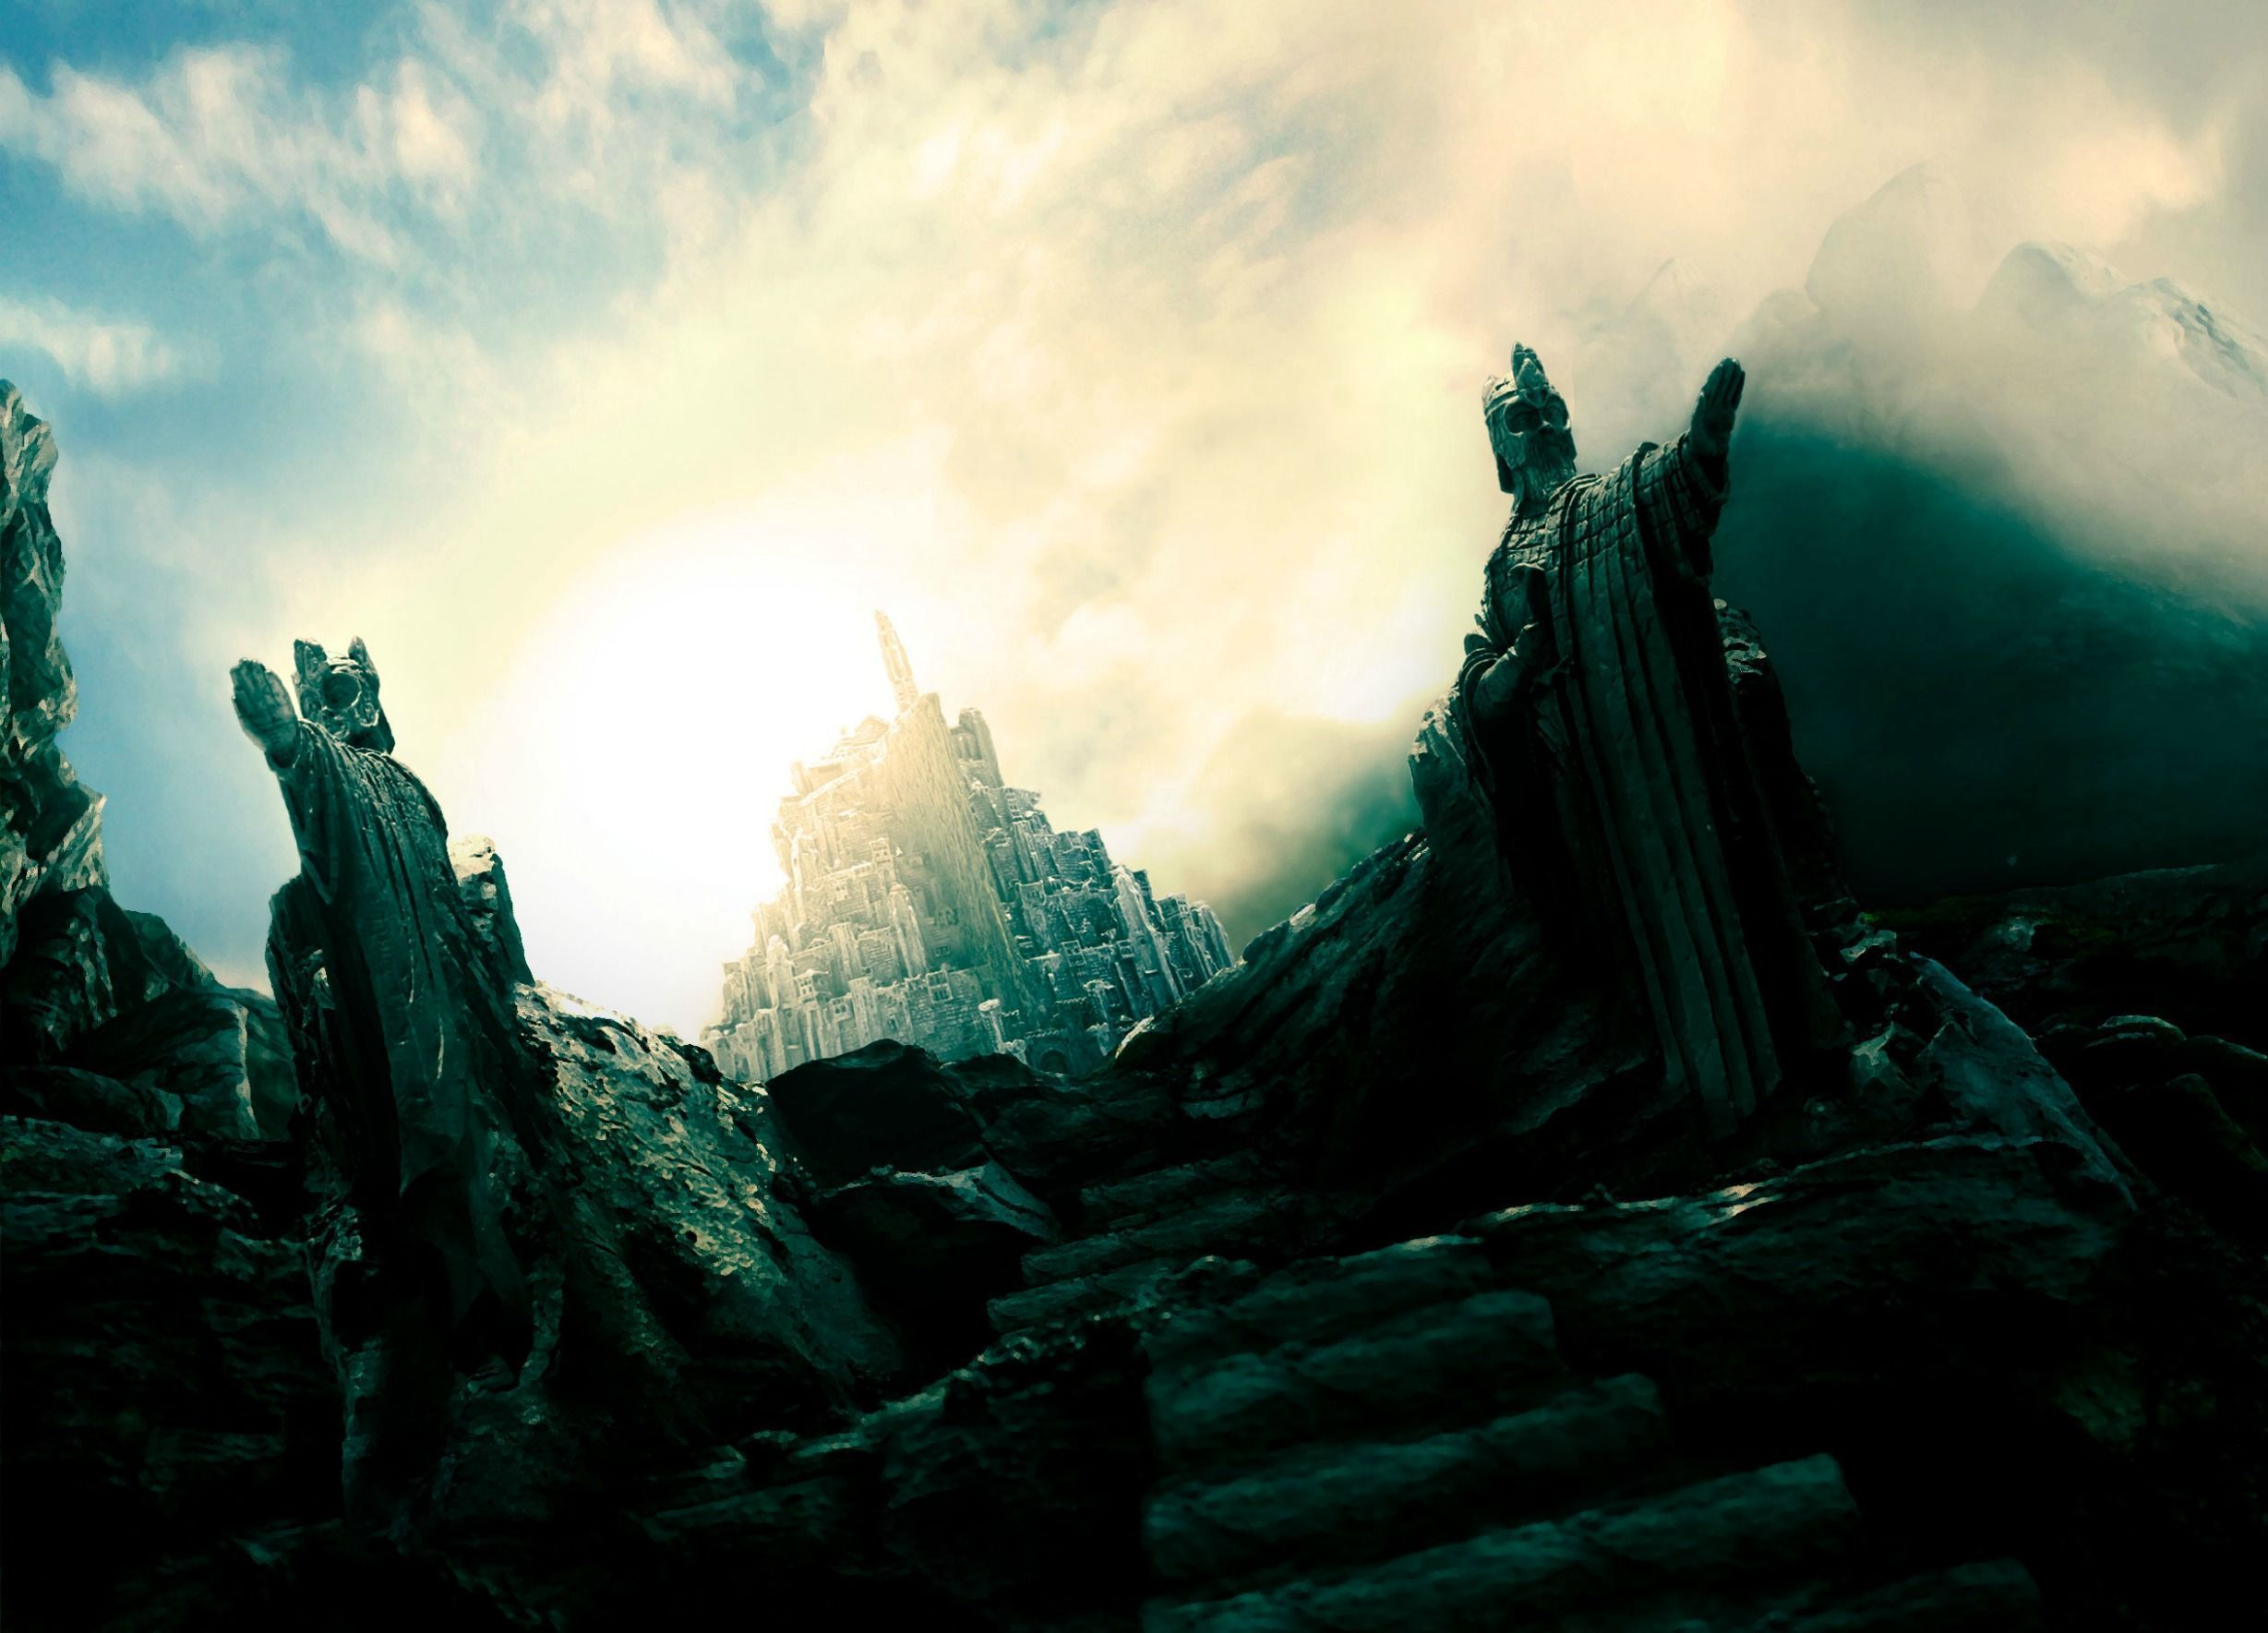 Lord Of The Rings Wallpapers Computador Desktop Fundos Lord Of The Rings Tolkien Background Images